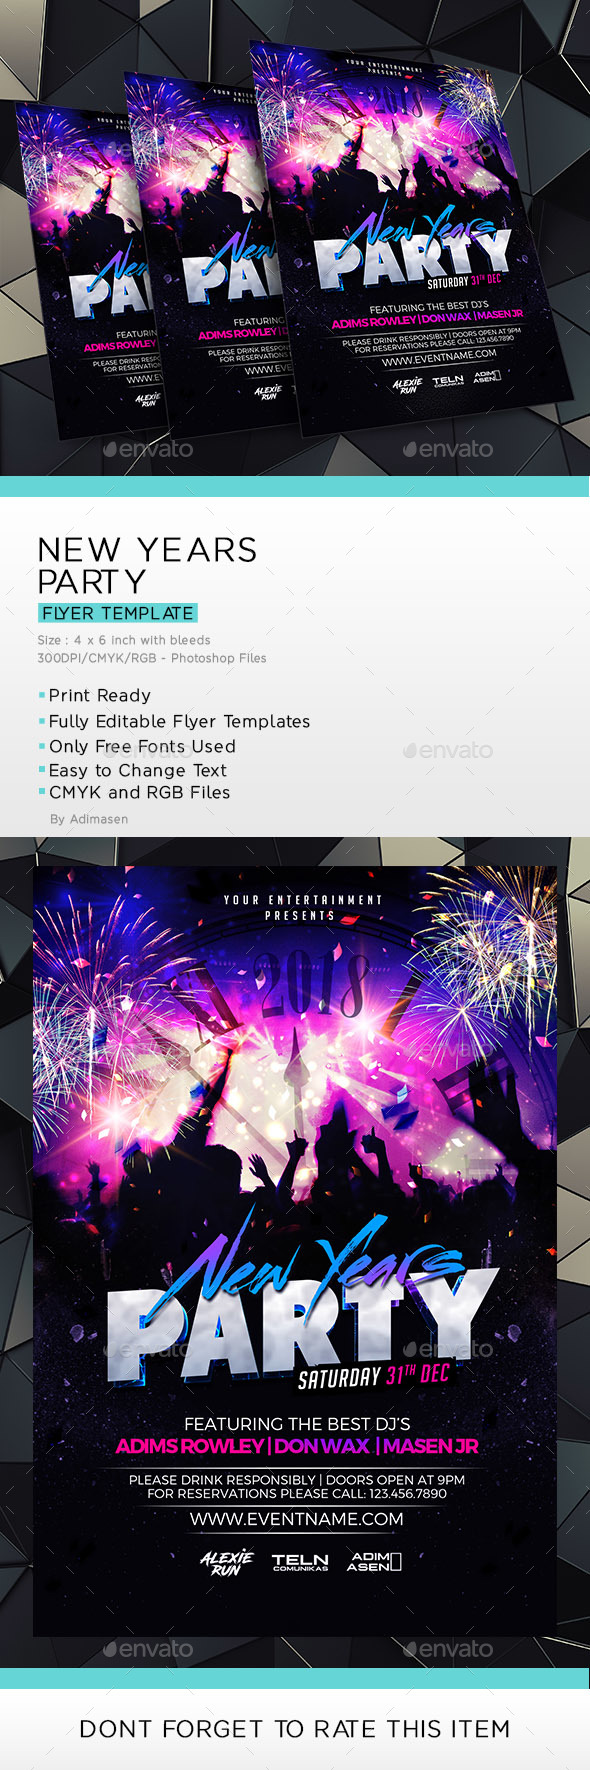 New Years Party Flyer Template - Clubs & Parties Events